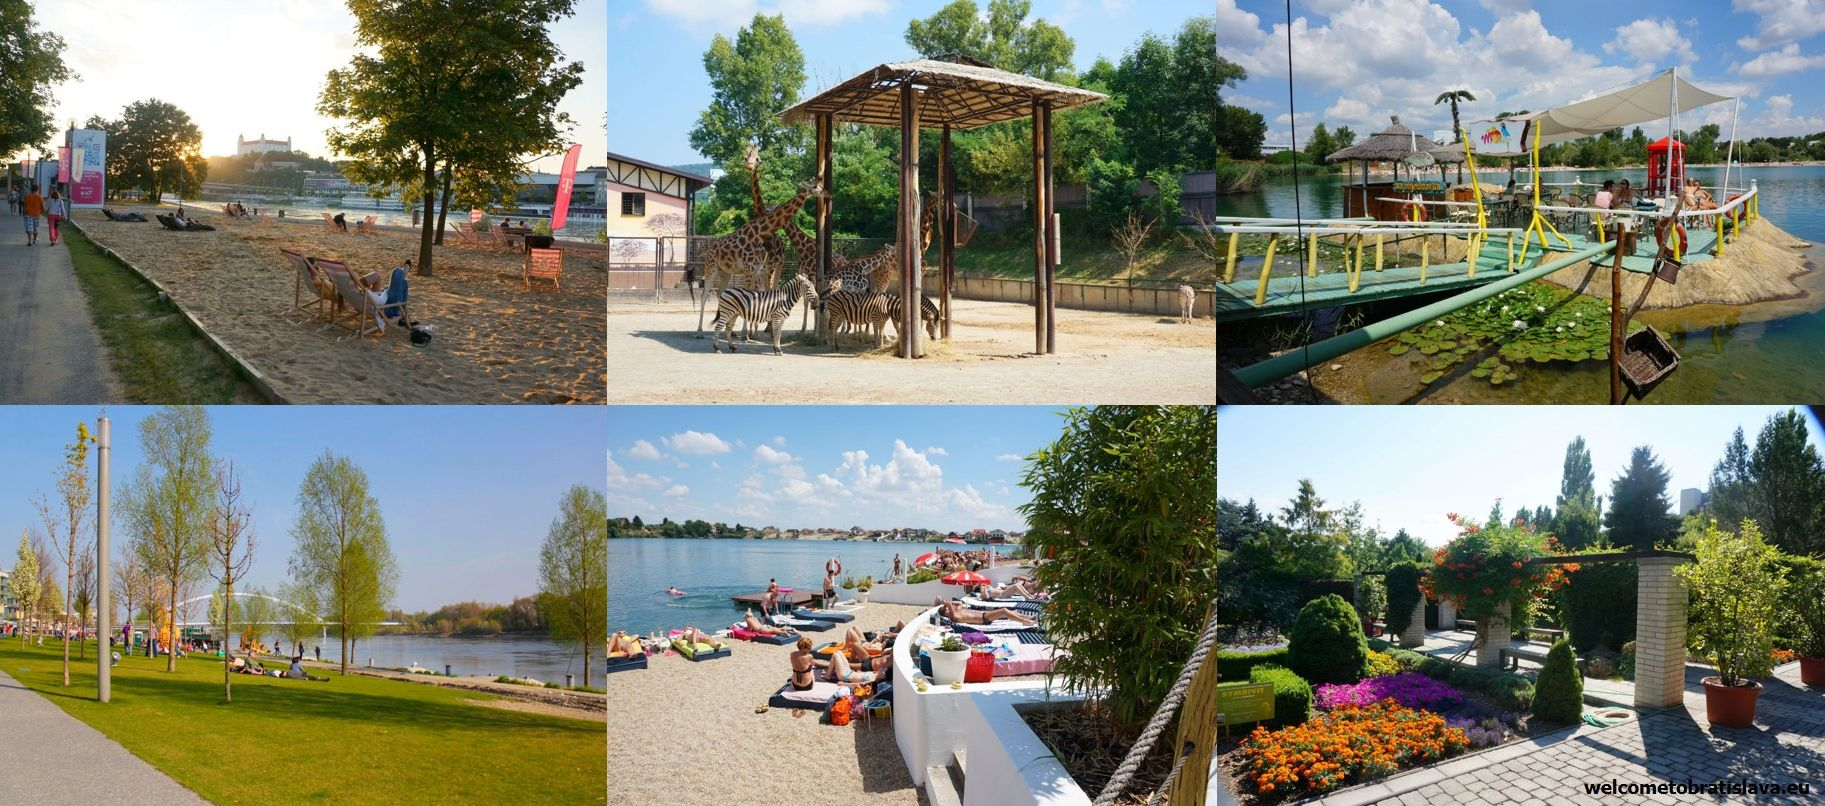 Sightseeing in Bratislava: other attractions